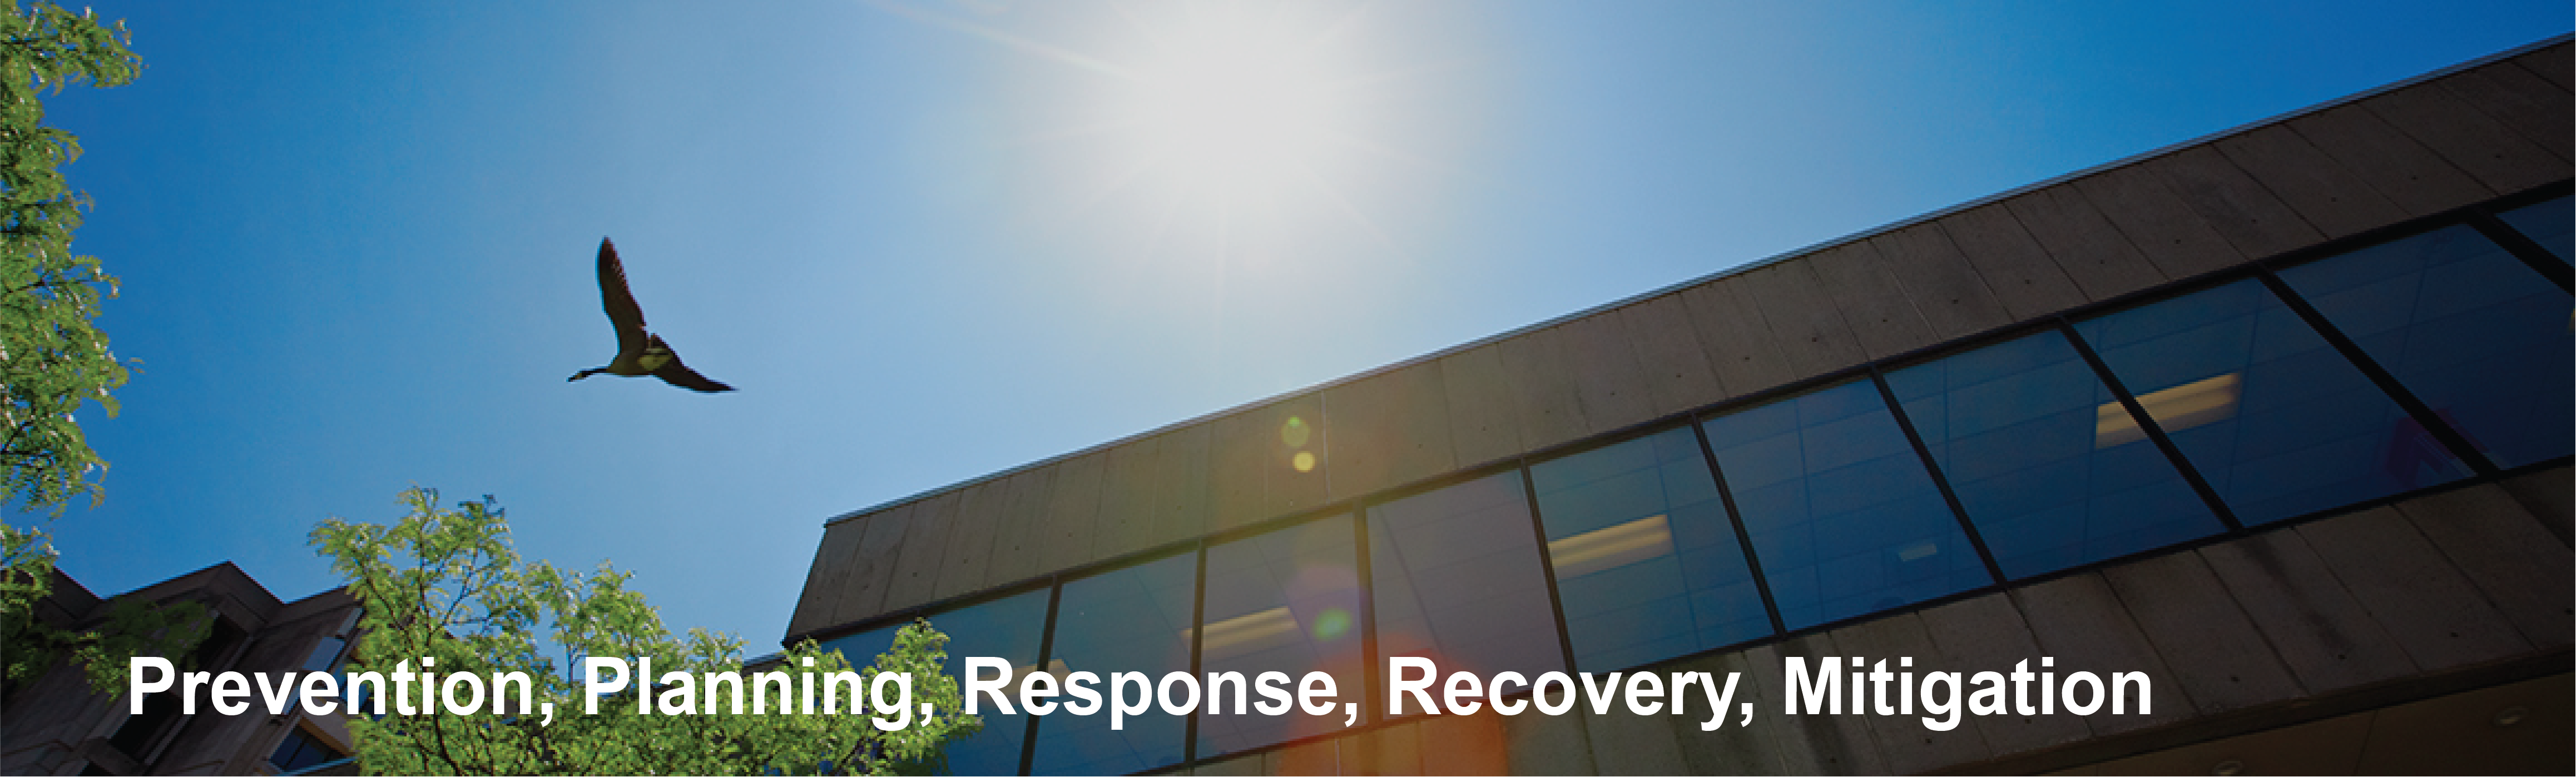 Protection, Planning, Response, Recovery, Mitigation